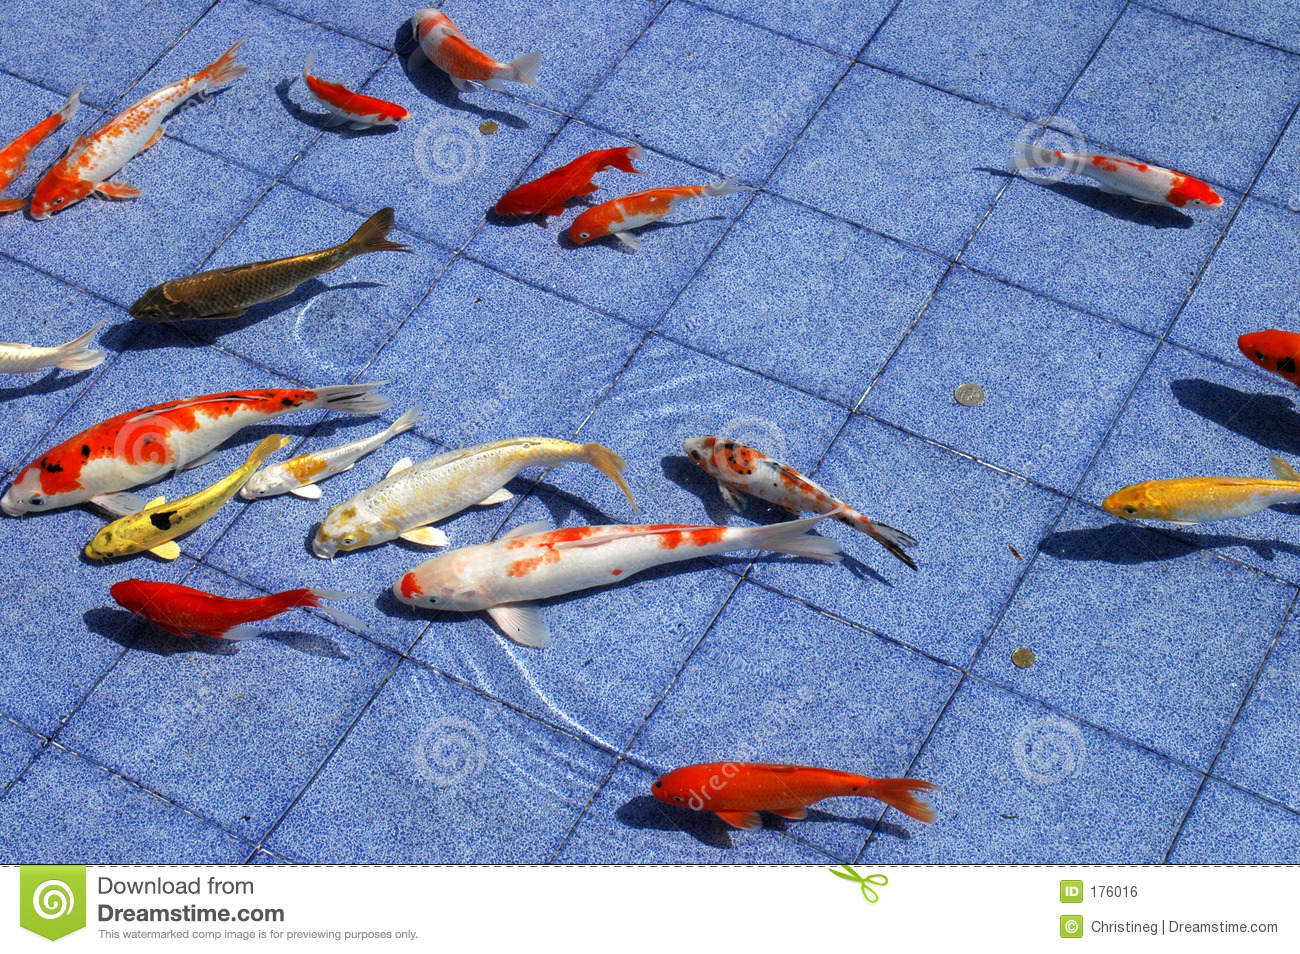 Koi fish in a blue pool royalty free stock image image Koi fish swimming pool